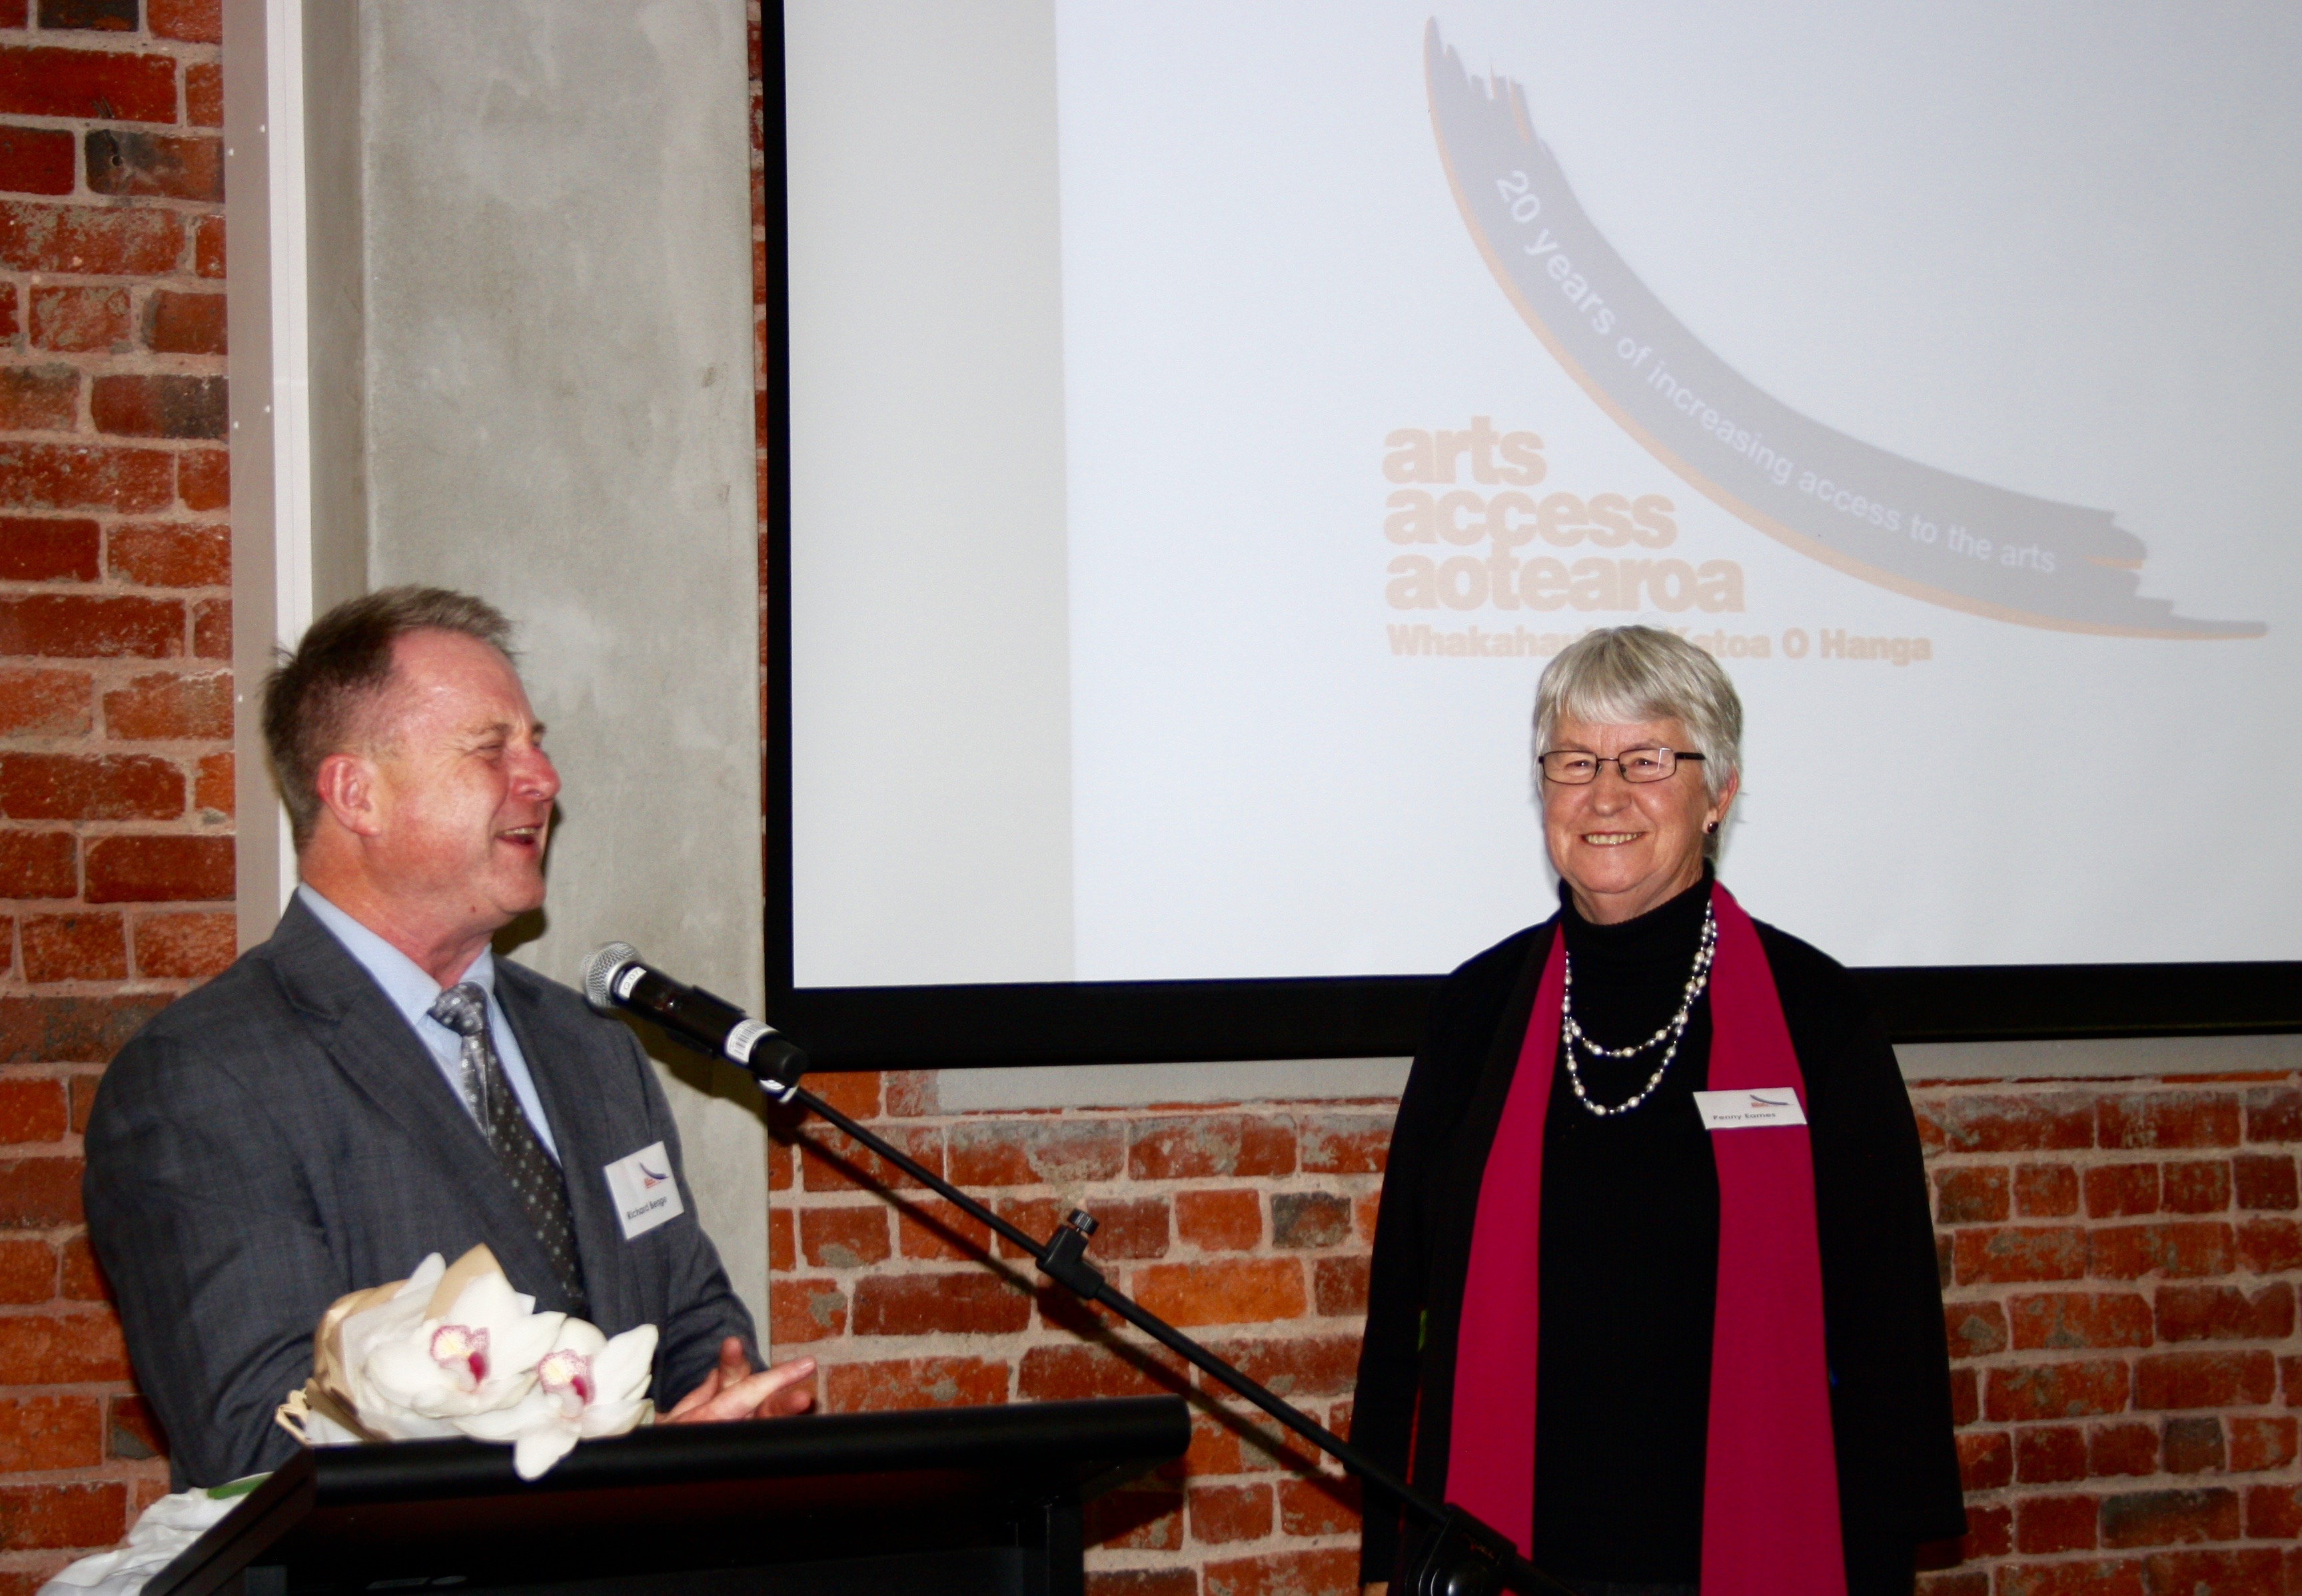 Current and founding executive directors, Richard Benge and Penny Eames sharing memories